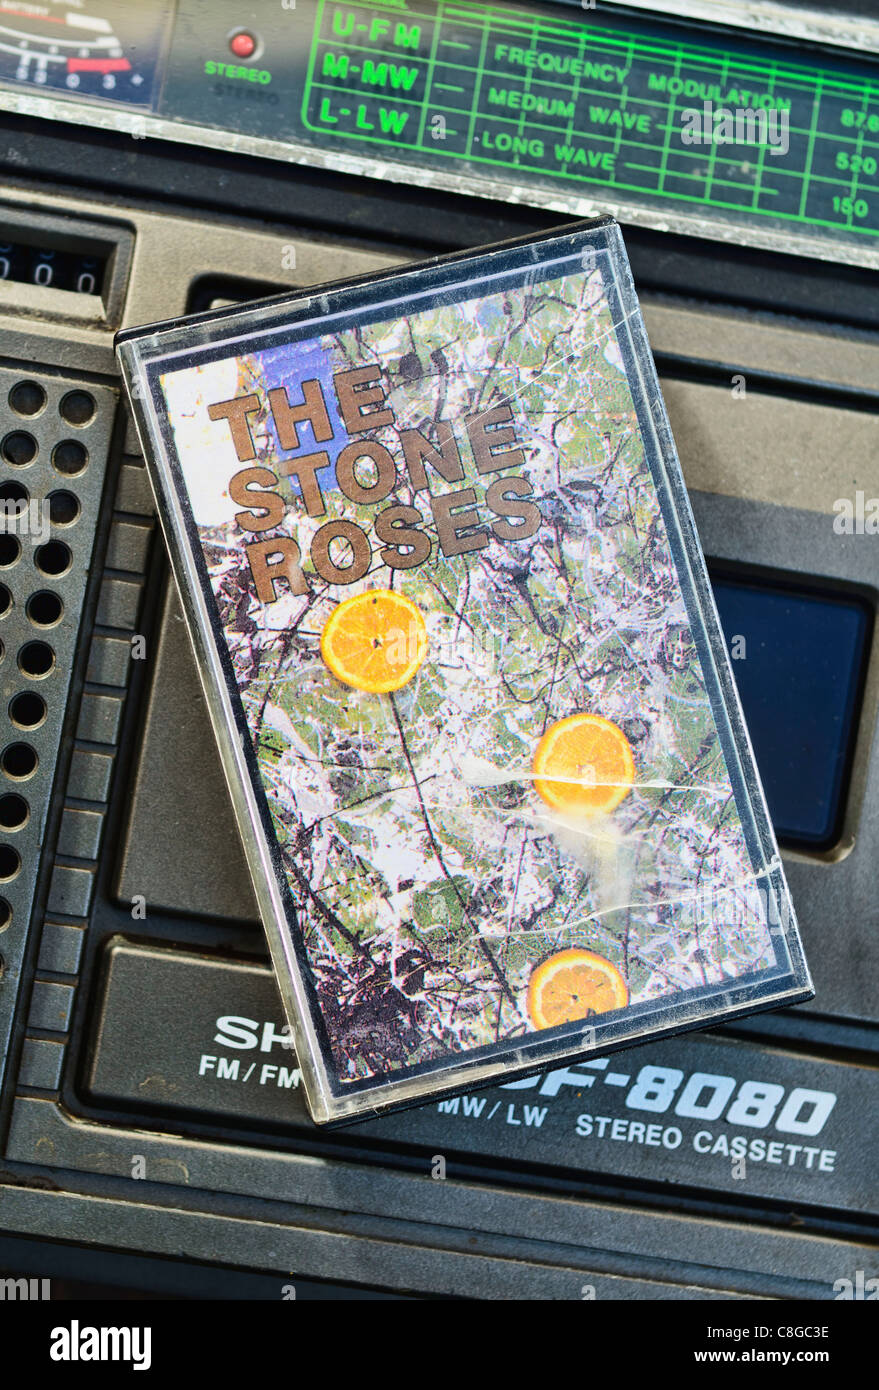 The Stone Roses debut album 'The Stone Roses' on Audio Cassette, released March 1989 on Silvertone Record. Stock Photo